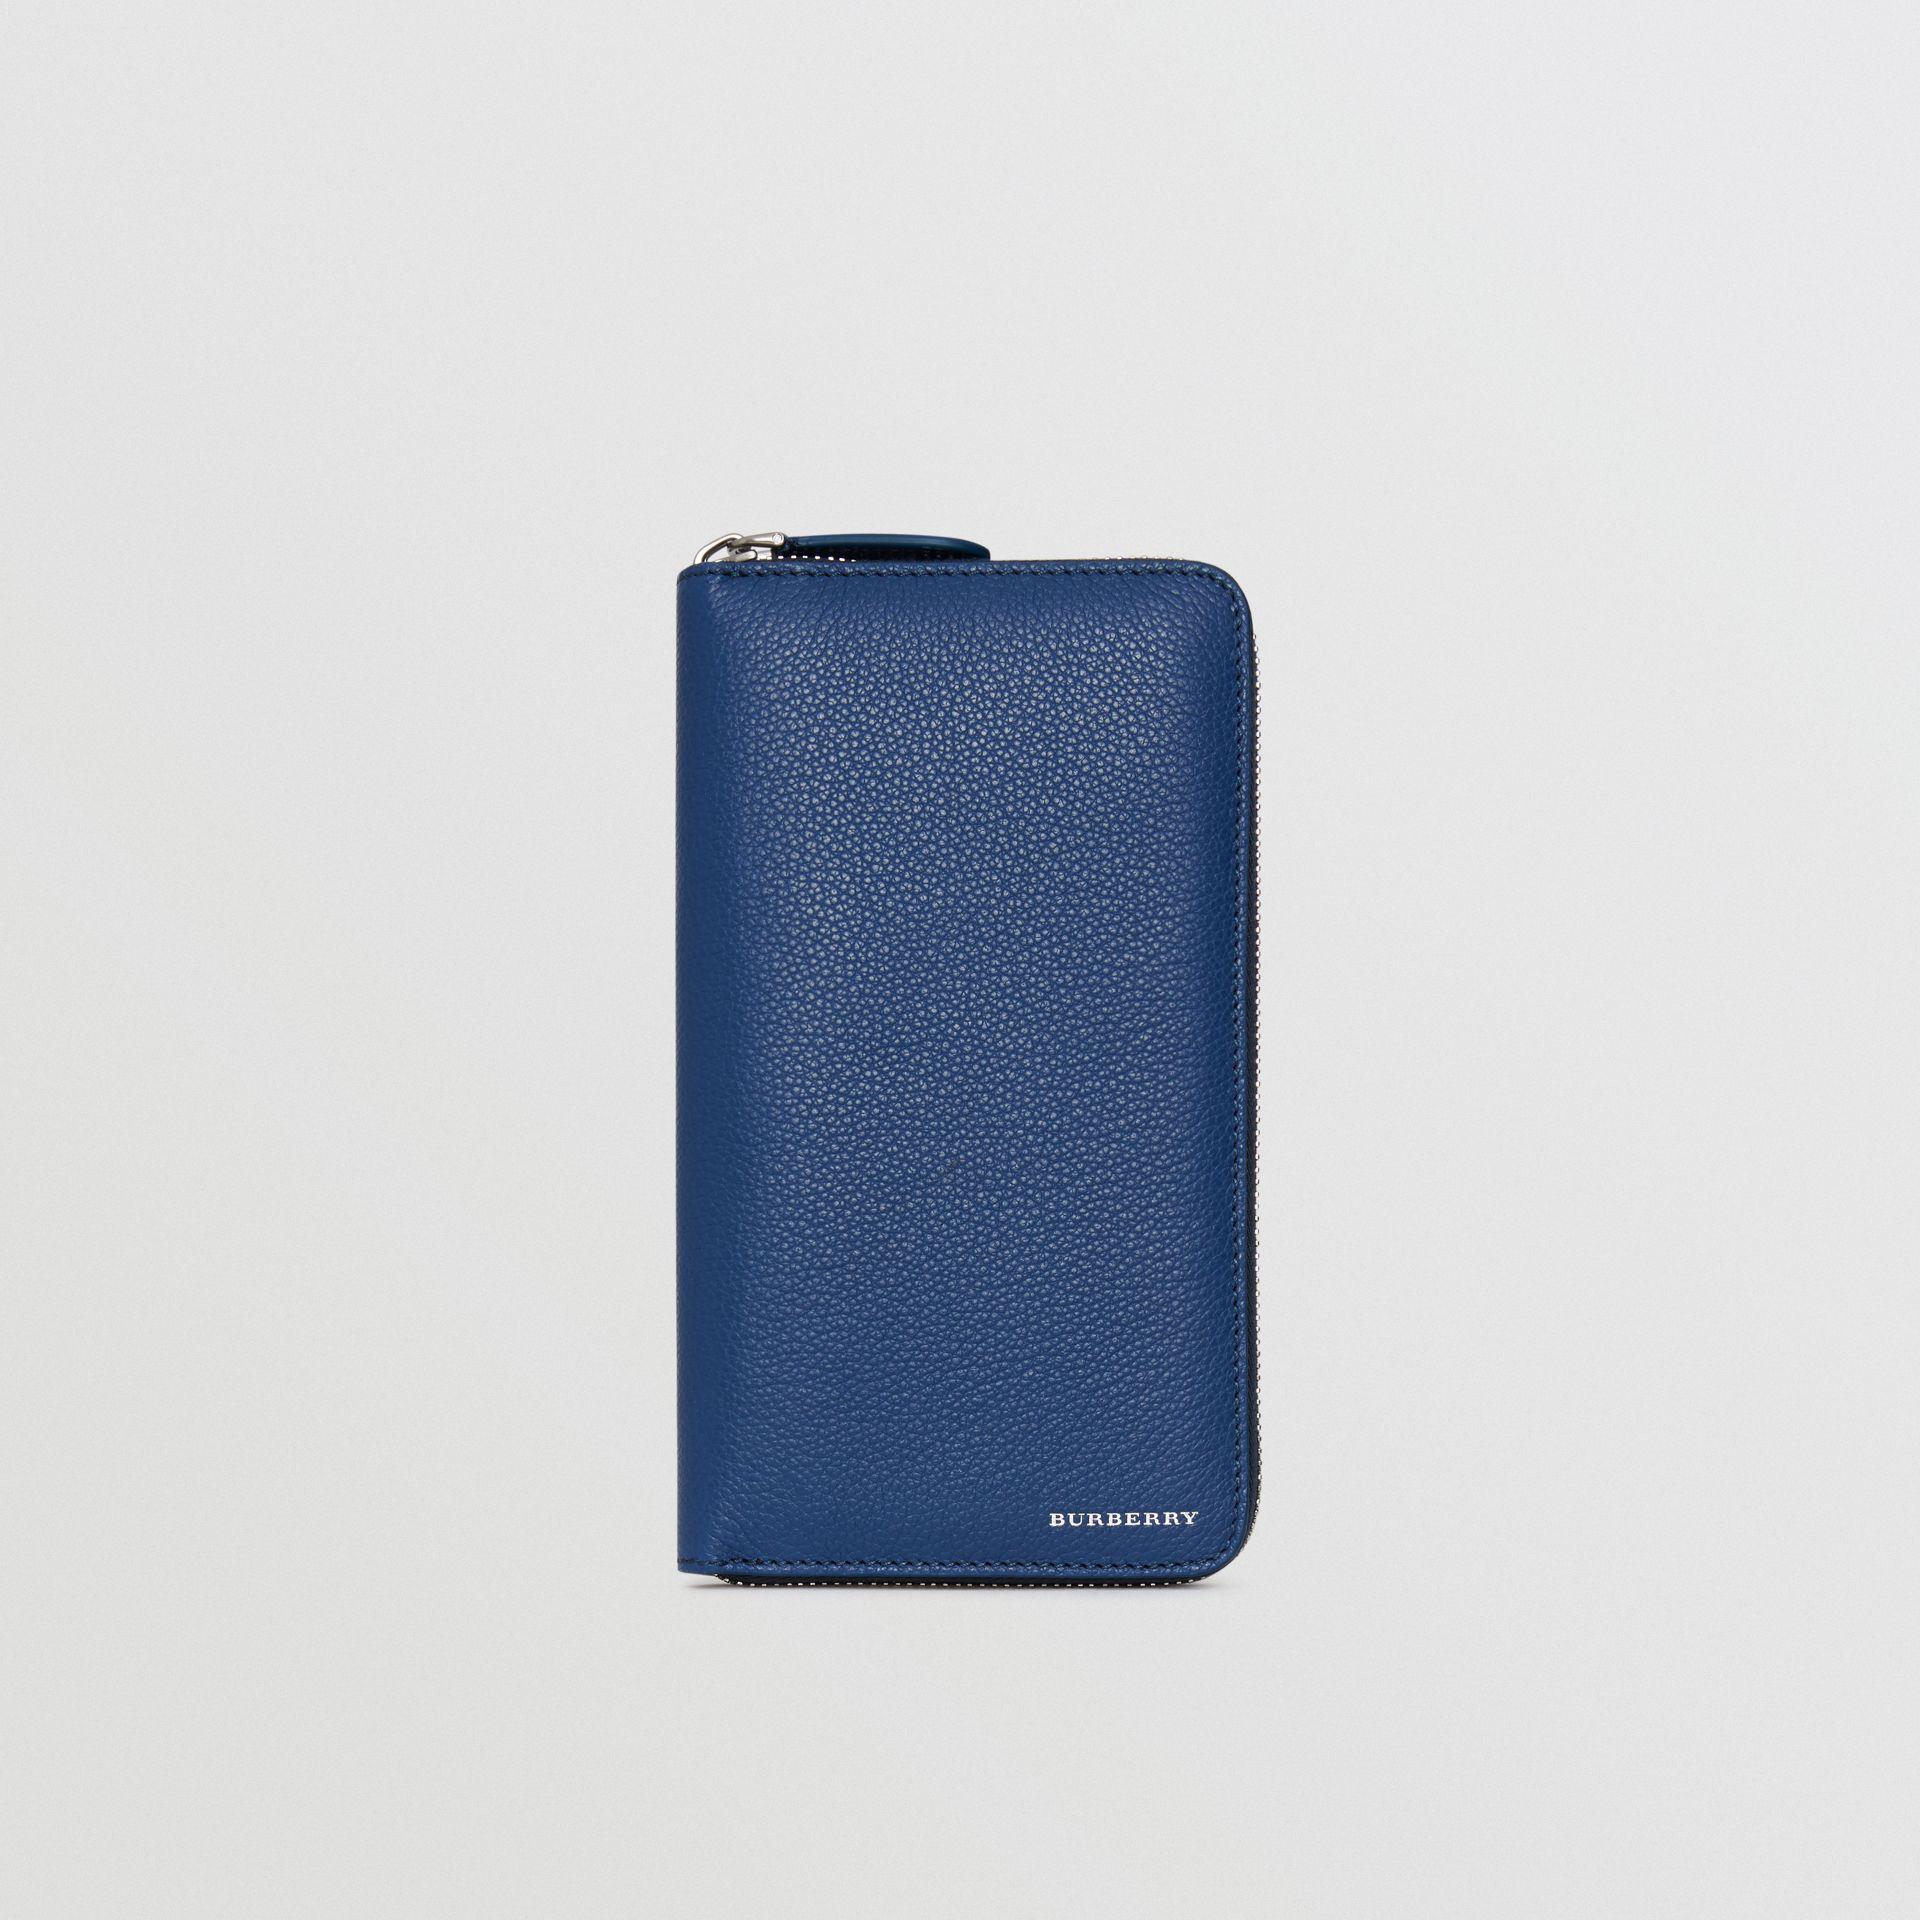 Grainy Leather Ziparound Wallet in Bright Ultramarine - Men | Burberry Hong Kong - gallery image 2